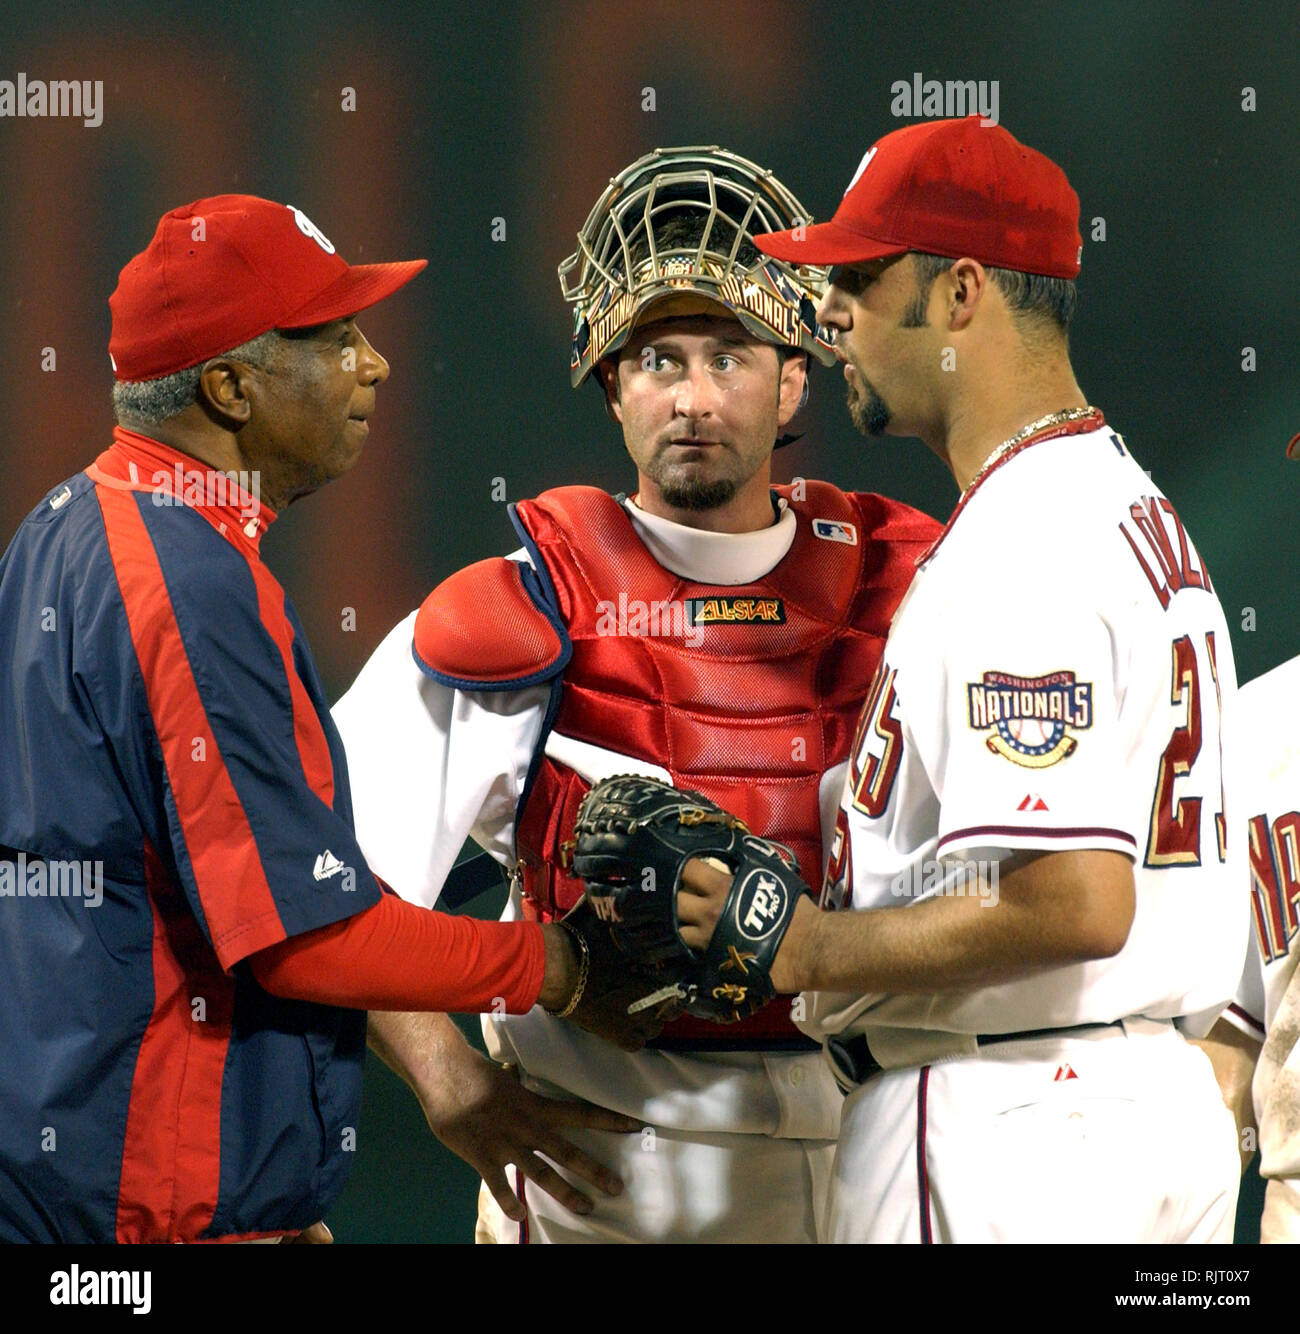 Washington, District of Columbia, USA. 5th July, 2005. Washington, DC - July 5, 2005 -- Washington Nationals manager Frank Robinson, left, congratulates starting pitcher Esteban Loaiza (21), right, as he removes him for a relief pitcher in the ninth inning against the New York Mets at RFK Stadium in Washington, DC on July 5, 2005. Nationals catcher Brian Schneider (23) looks on from center. The Nationals withstood a ninth inning rally and beat the Mets 3 to 2 Credit: Ron Sachs/CNP/ZUMA Wire/Alamy Live News - Stock Image